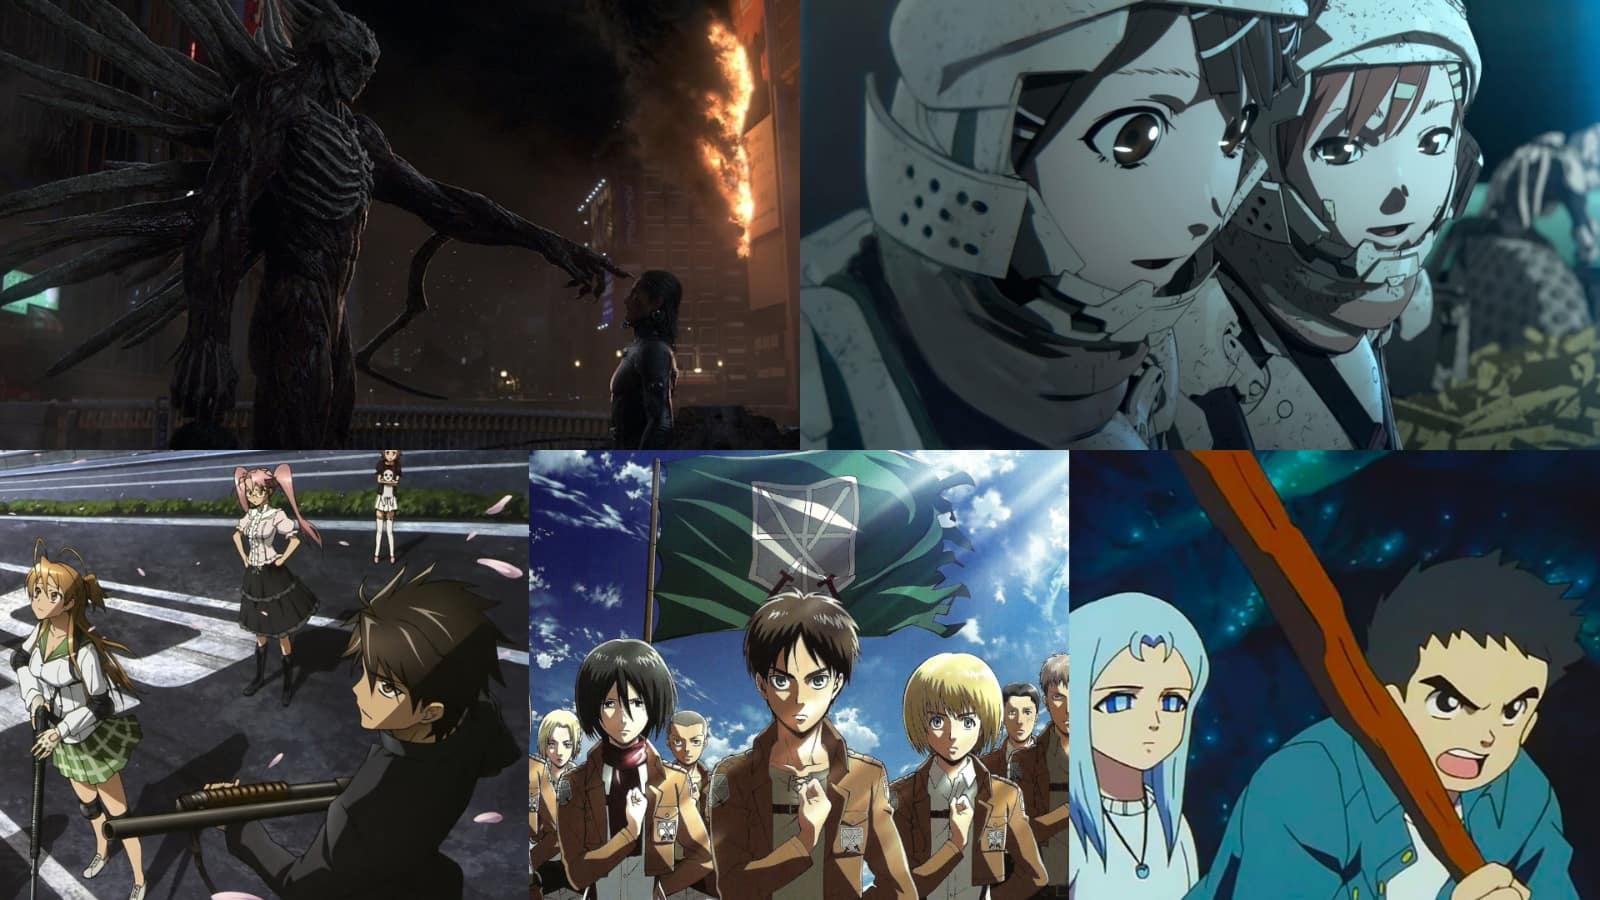 Top 10 Post Apocalyptic Anime to Watch While Social Distancing